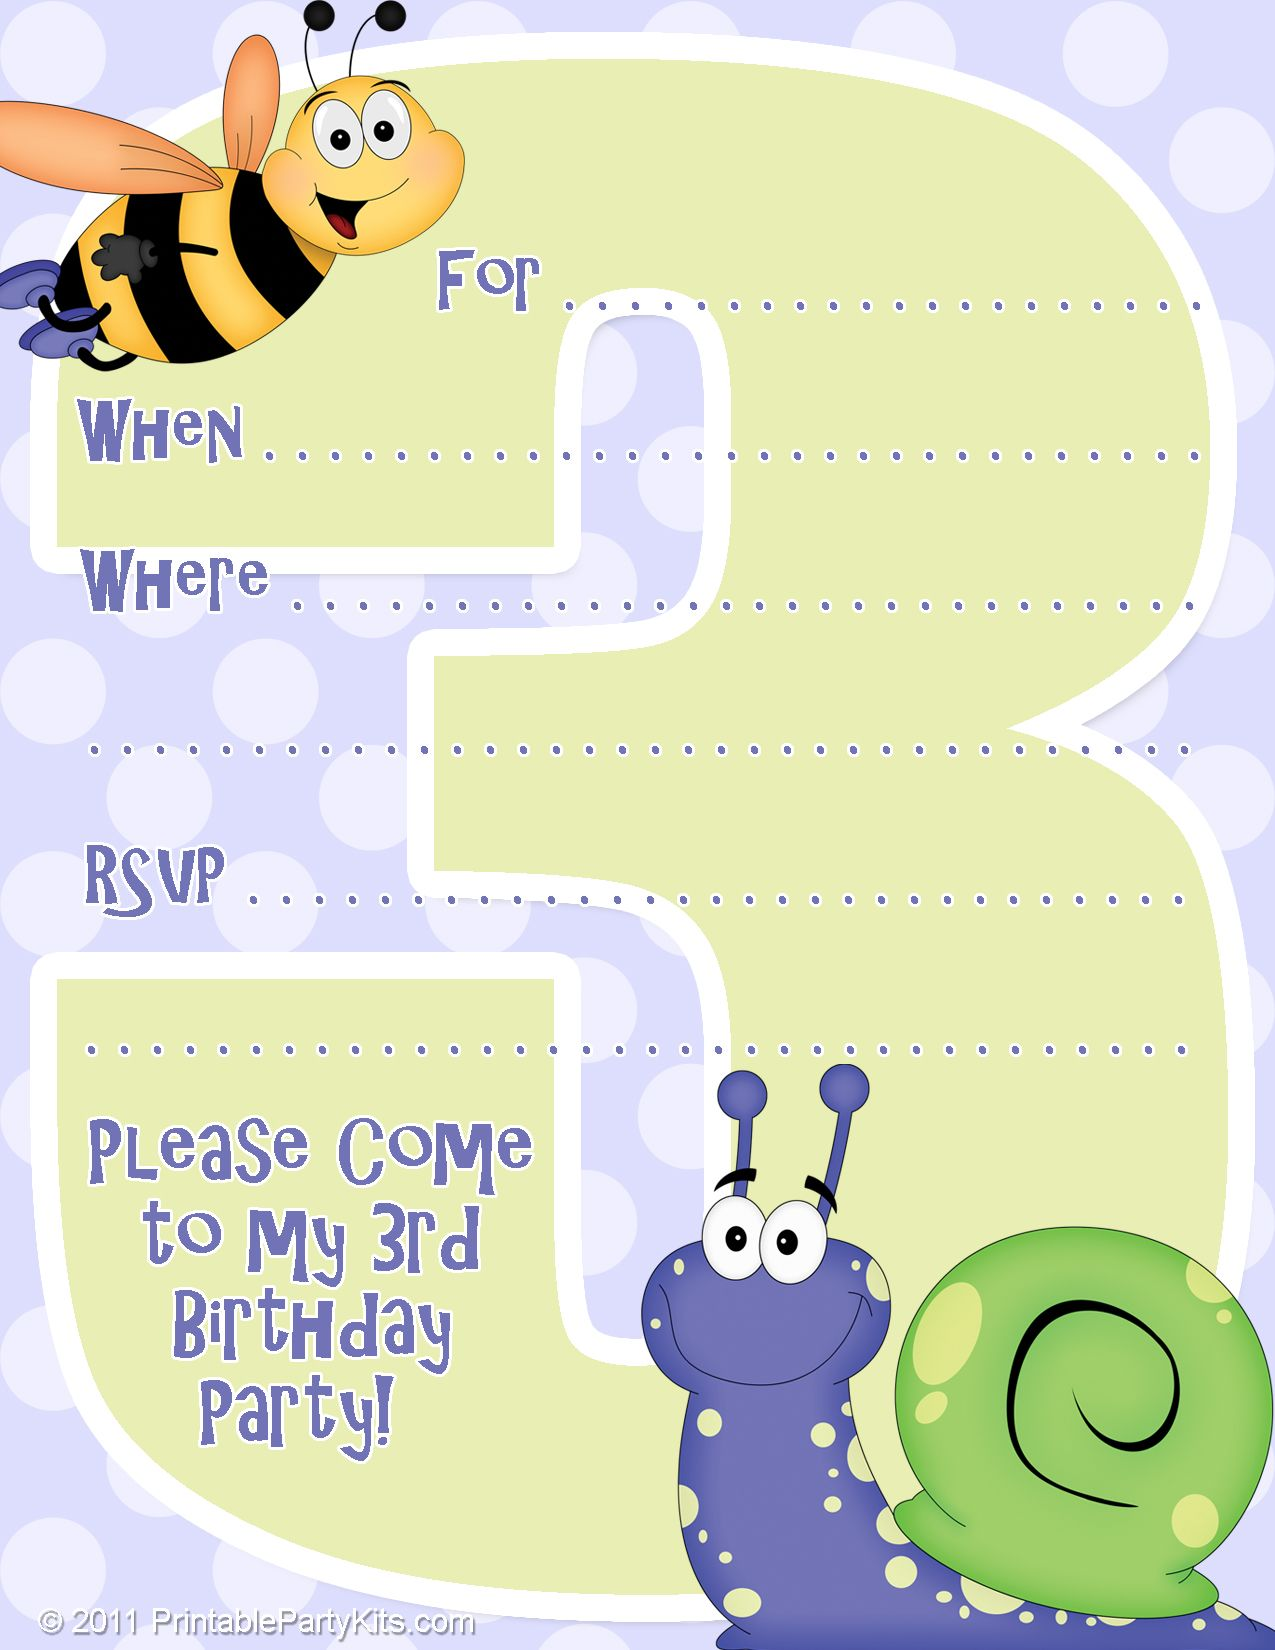 3rd birthday party invitations free printable Party Ideas